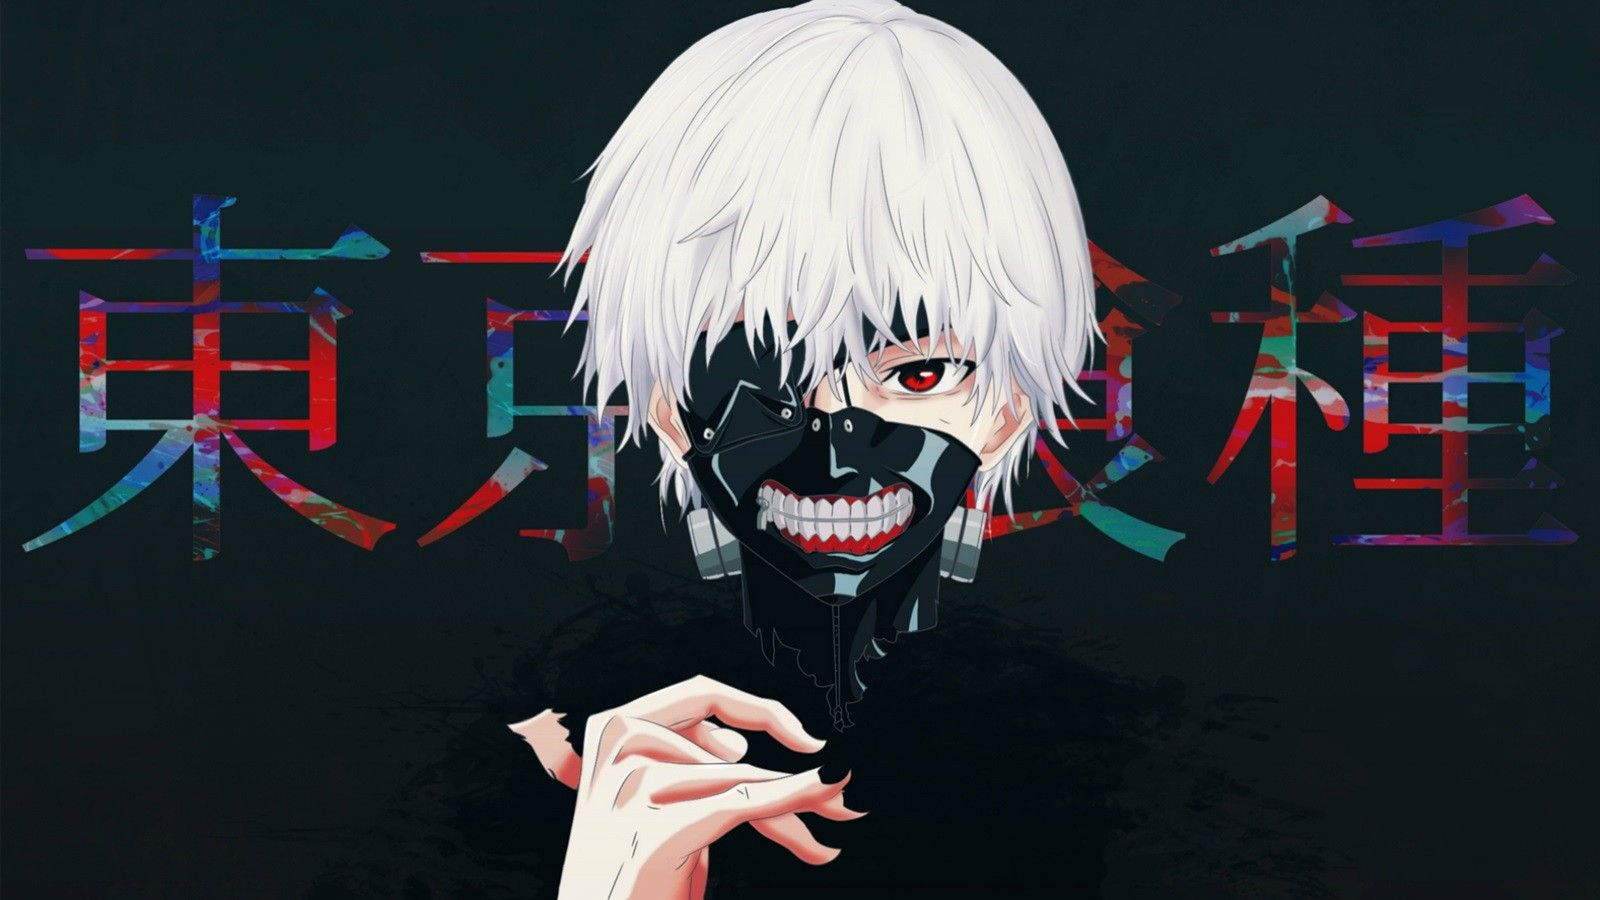 This is my all time favorite kaneki aesthetic wallpaper. Aesthetic Tokyo Ghoul Wallpapers - Wallpaper Cave